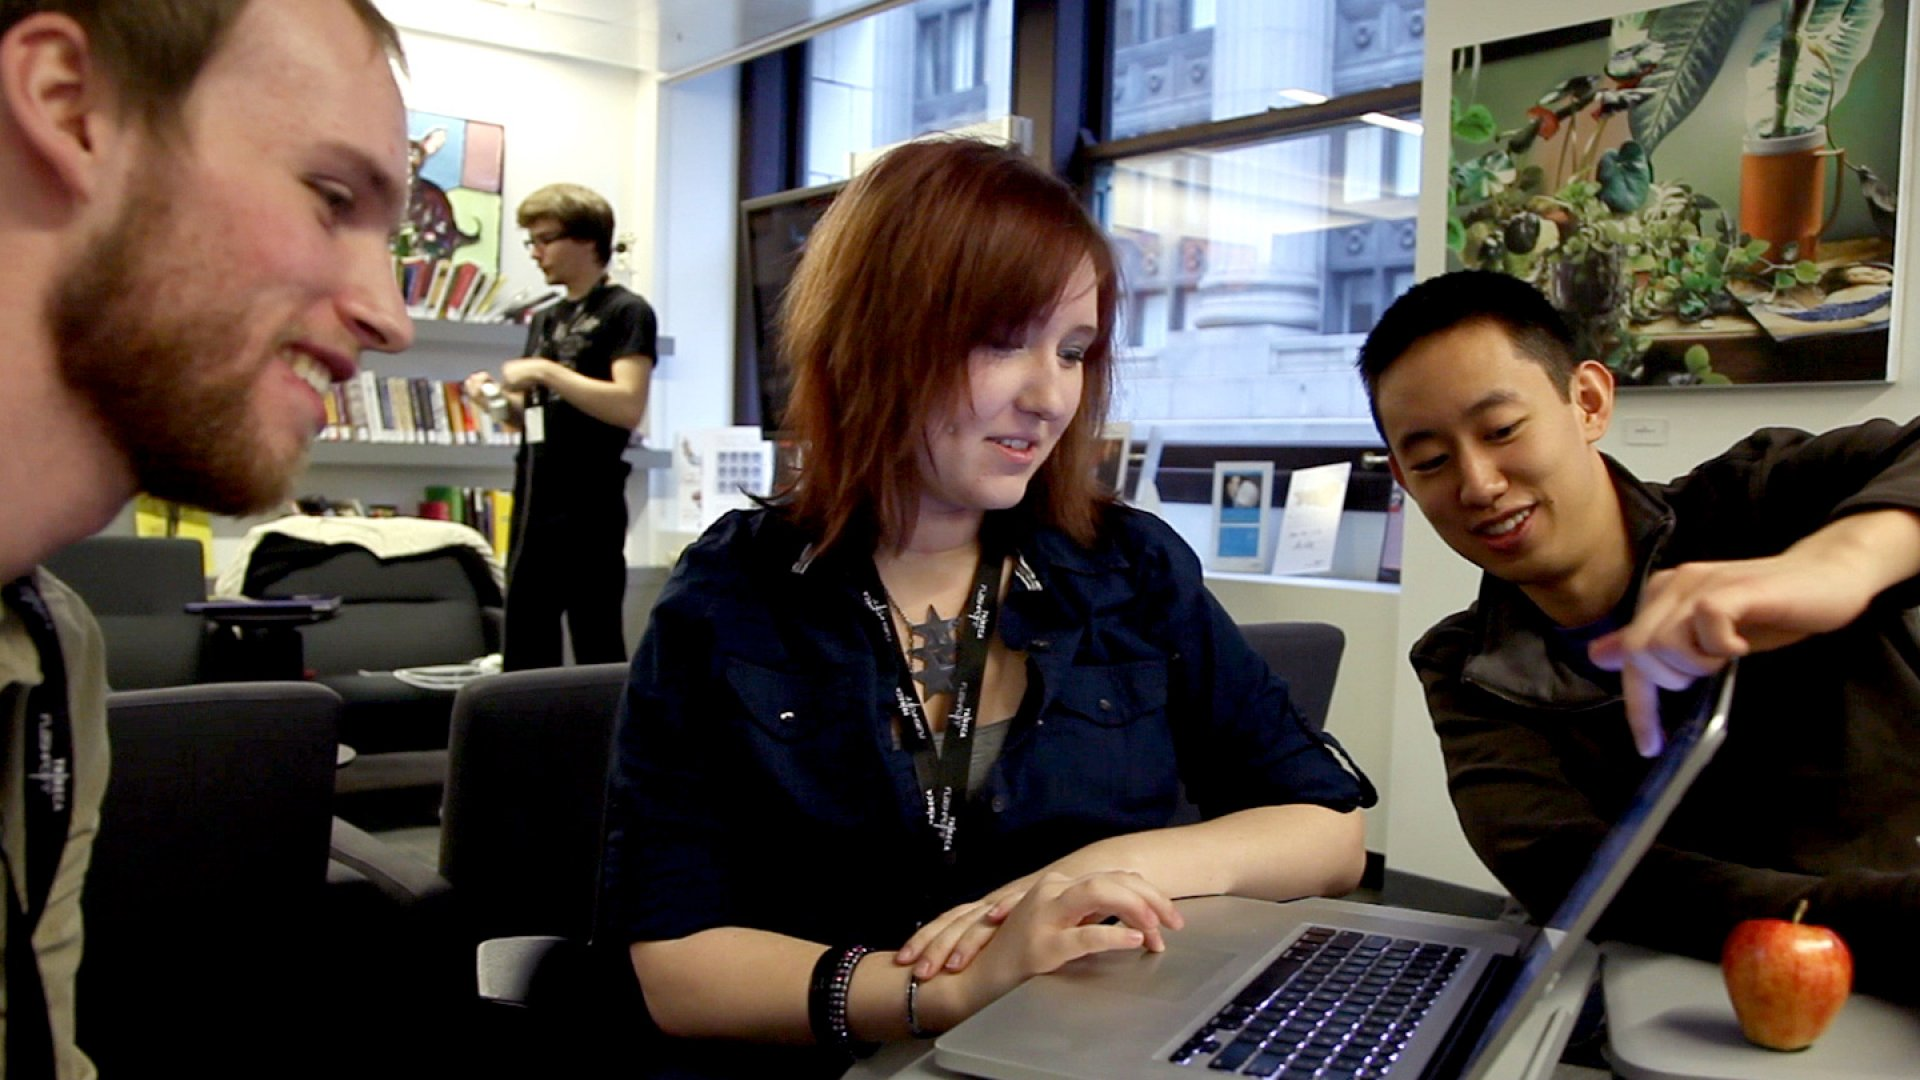 JiveHealth's founder Dennis Ai (right) at work.